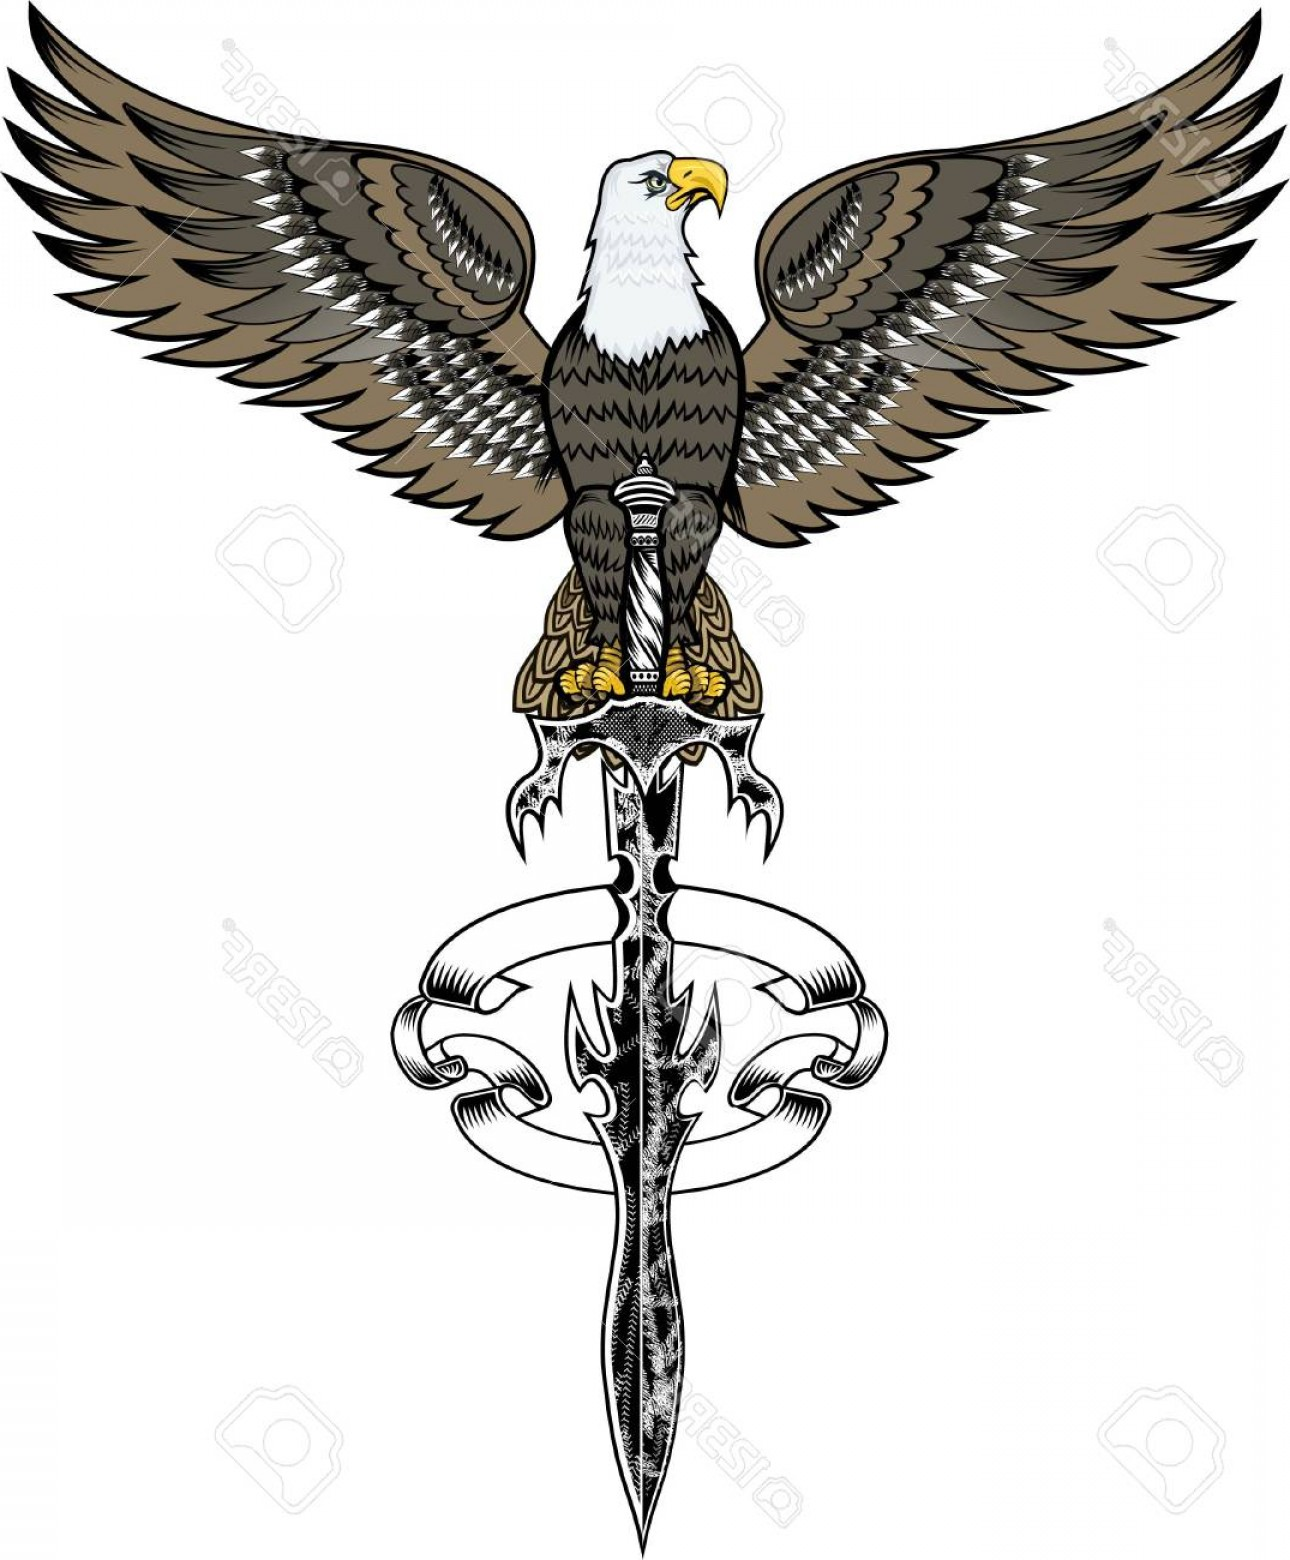 Vector Eagle Shield Sword: Photostock Vector American Eagle With Sword Illustration